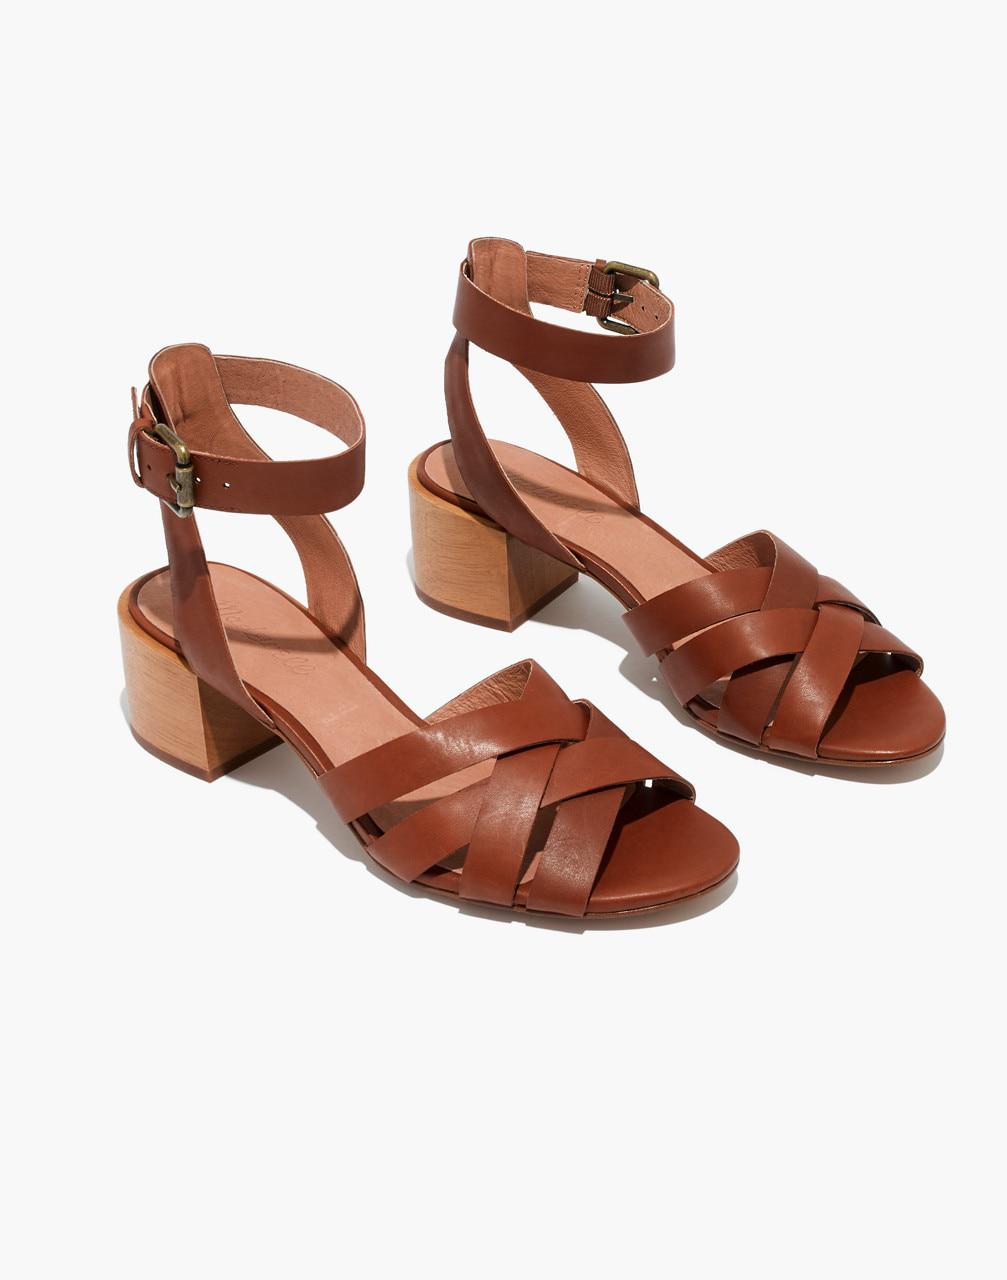 4819e947c21 Lyst - Madewell The Lucy Sandal in Brown